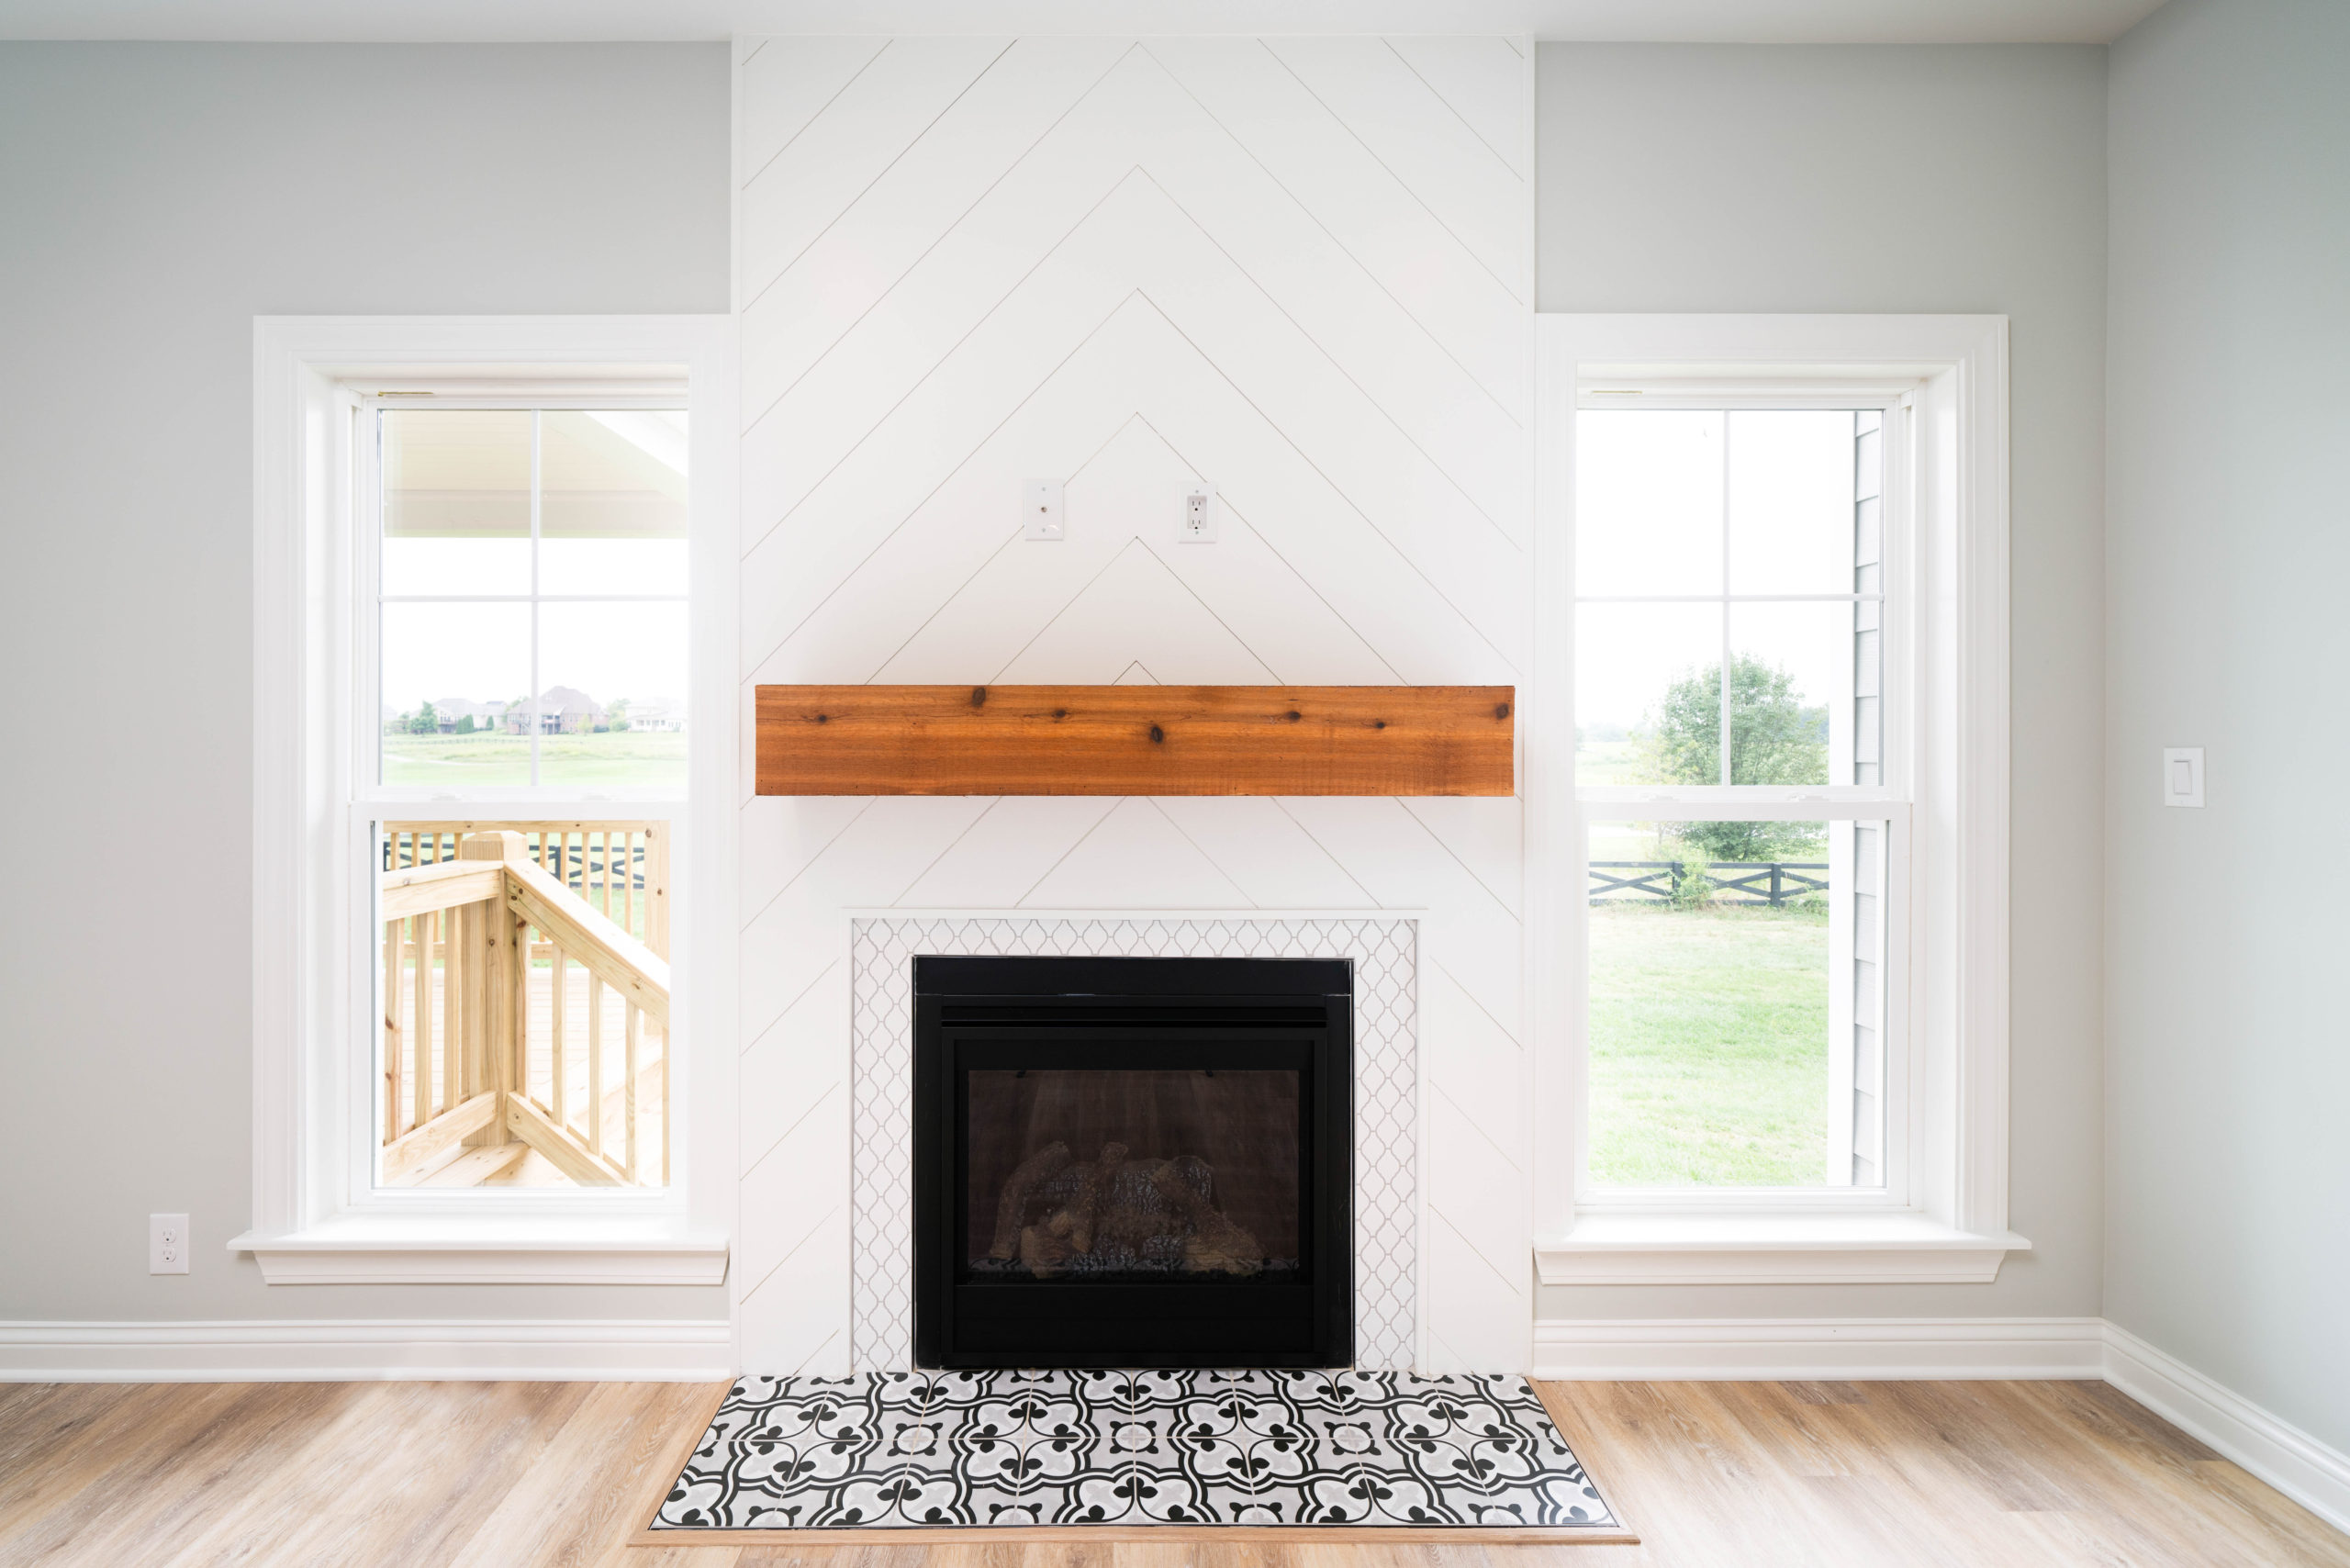 custom shiplap fireplace with tile floor and wood mantel